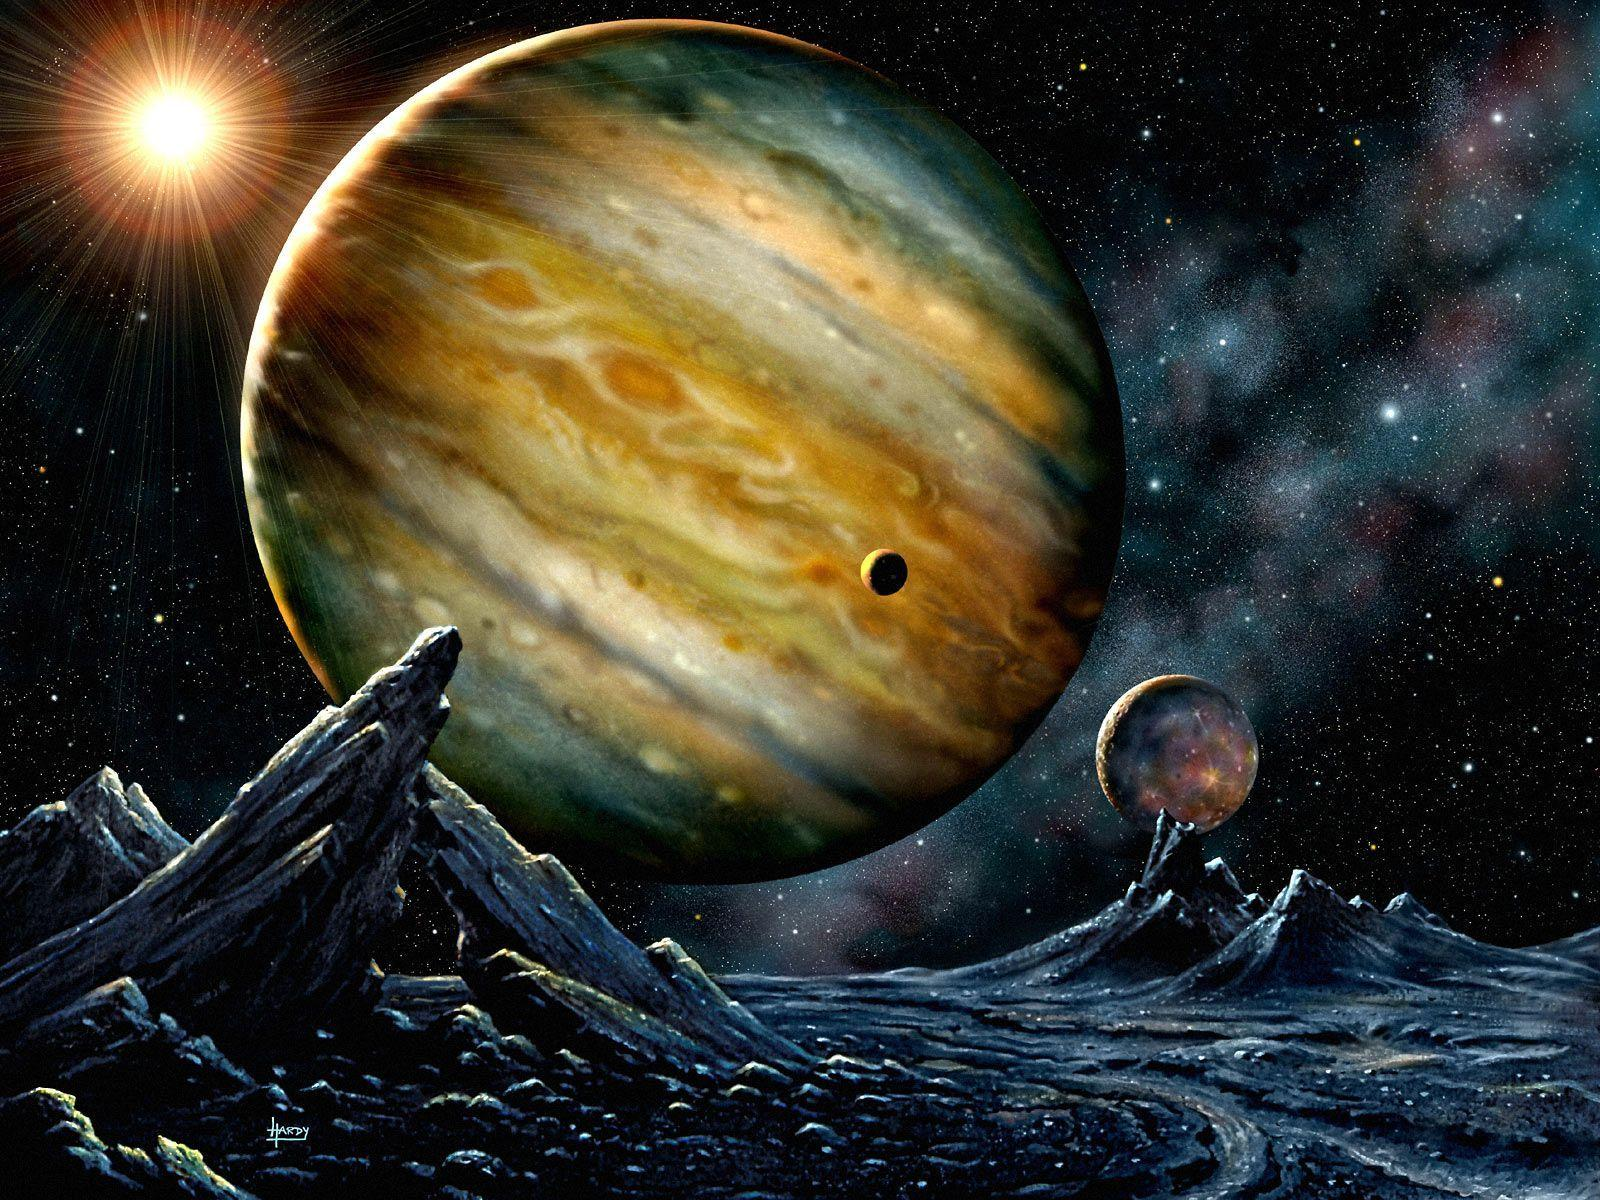 Jupiter Space HD Wallpaper, Jupiter Space Pictures, New Wallpapers